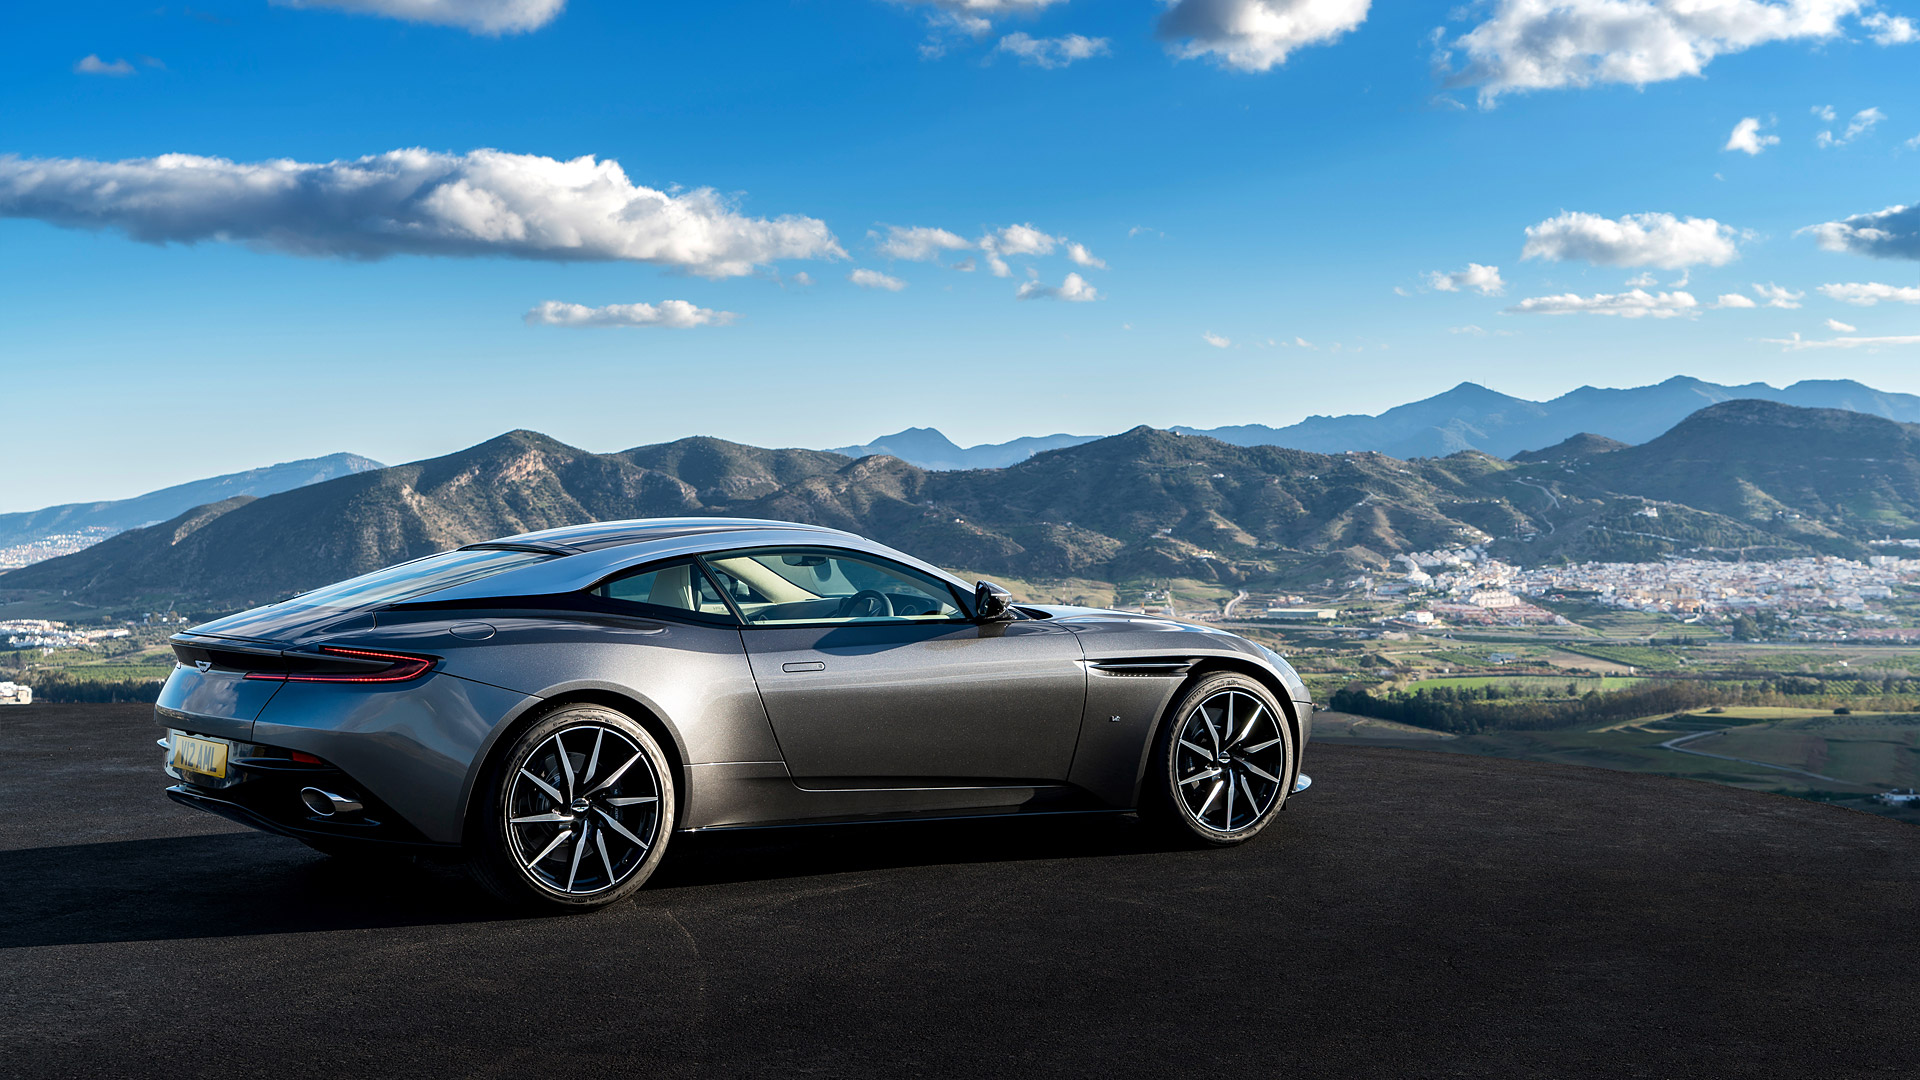 2017 Aston Martin DB11 Wallpapers HD Images   WSupercars 1920x1080